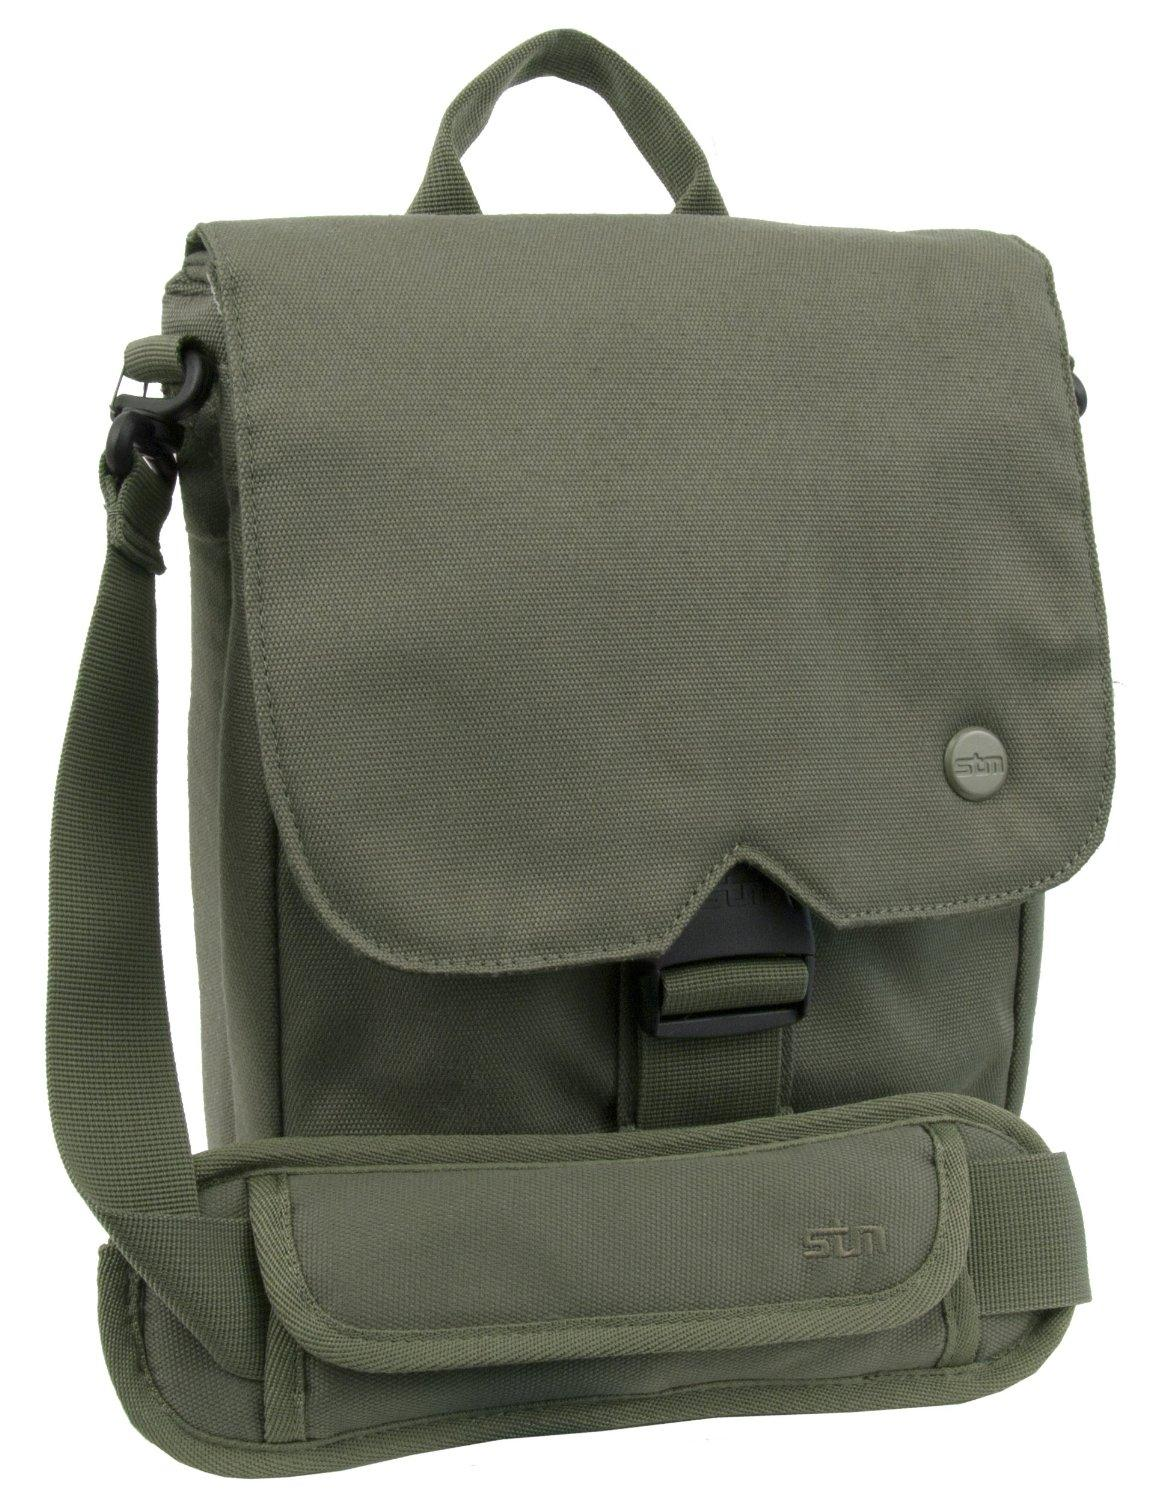 STM Scout 2 iPad Shoulder Bag , Olive